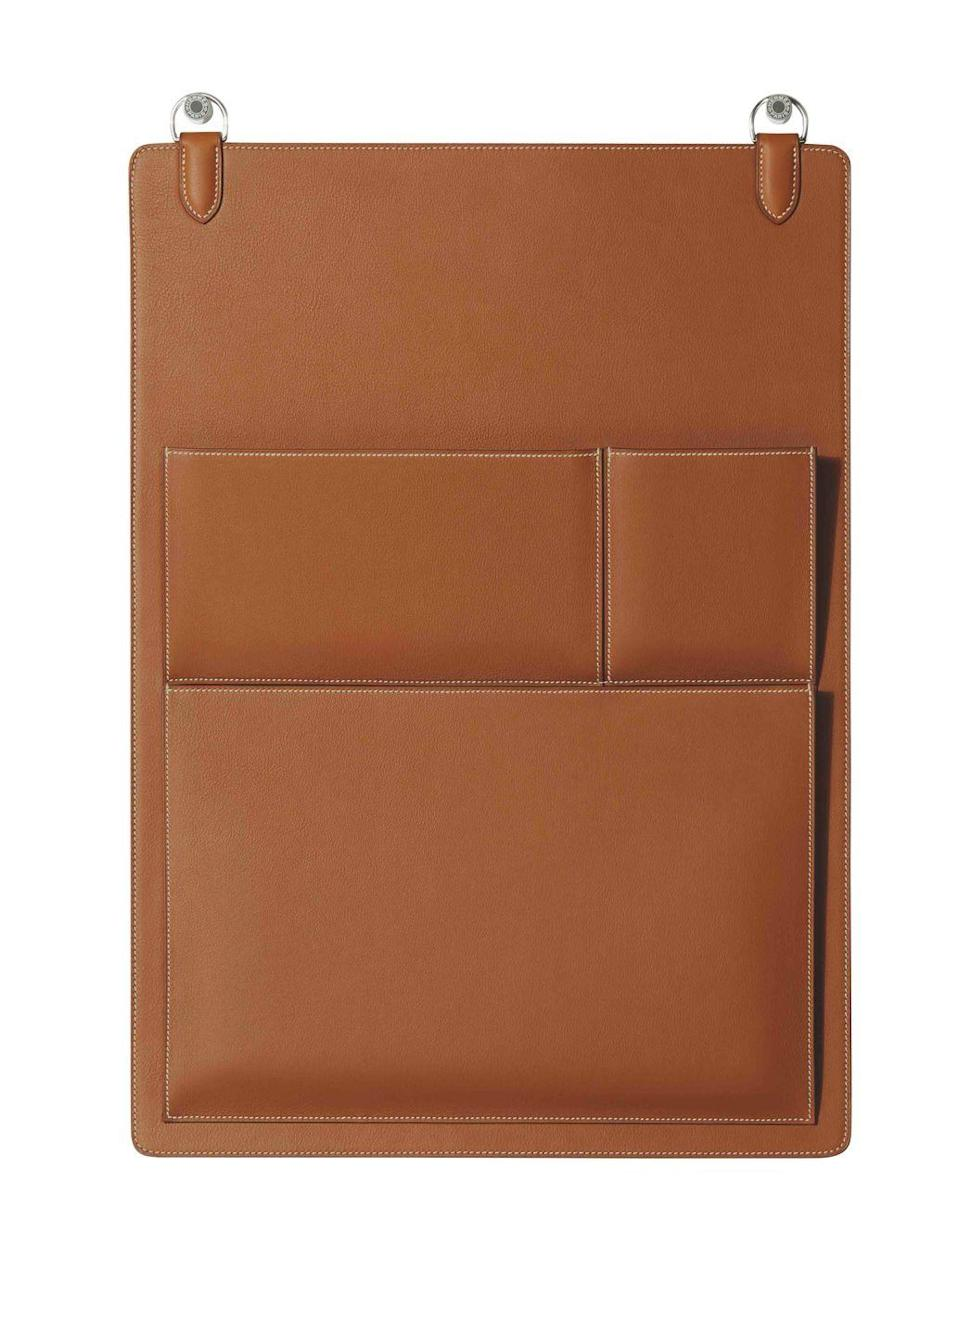 """<p>For the home office that has everything, this leather organiser from Hermès is a handbag for your paperwork. Made with bull-calf and goatskin, its is stitched together by hand in the same manner as the fashion house's iconic 'Kelly' bag. £11,500, <a href=""""https://www.hermes.com/uk/en/category/home/objects/#